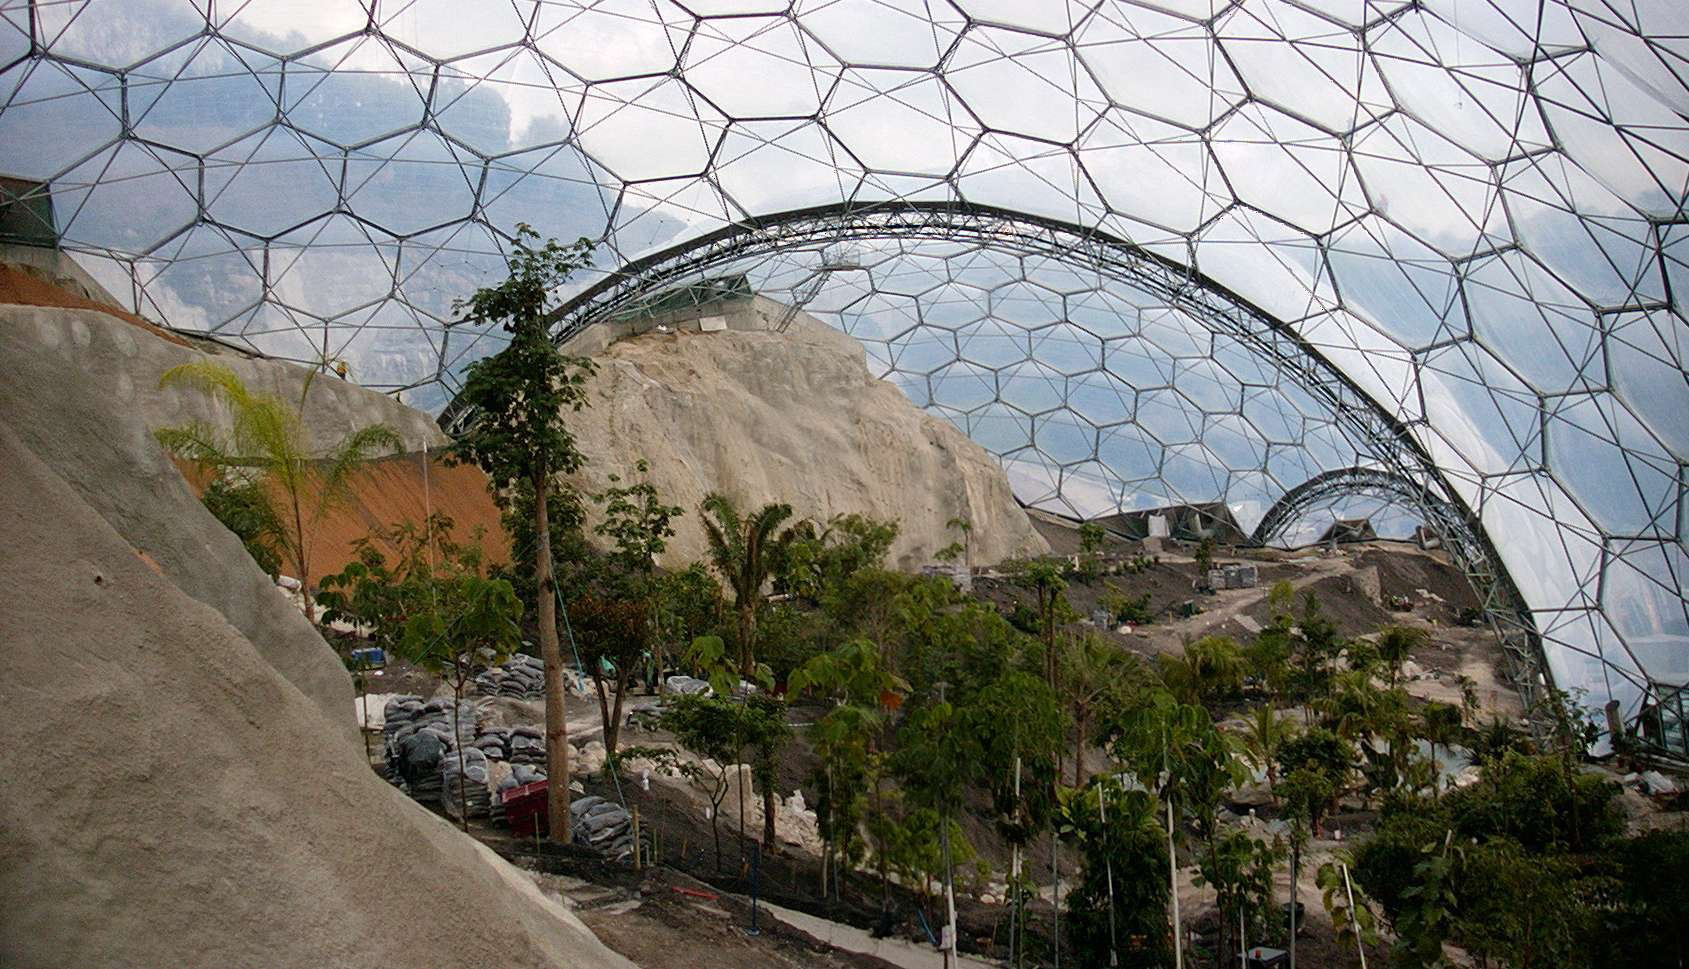 ETFE cushions used at the Eden project